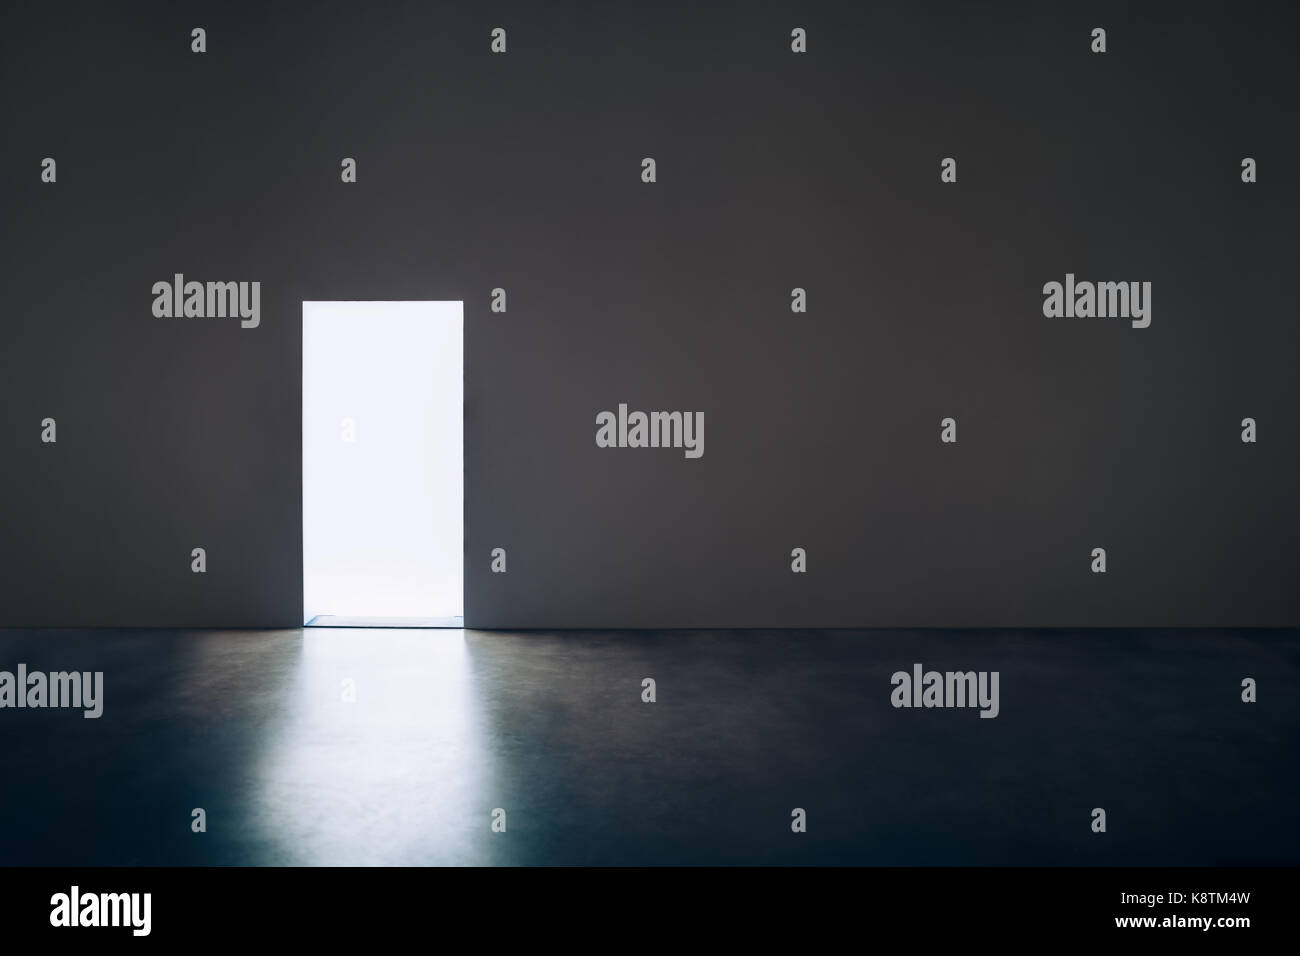 Light door in dark room.Hope concept - Stock Image